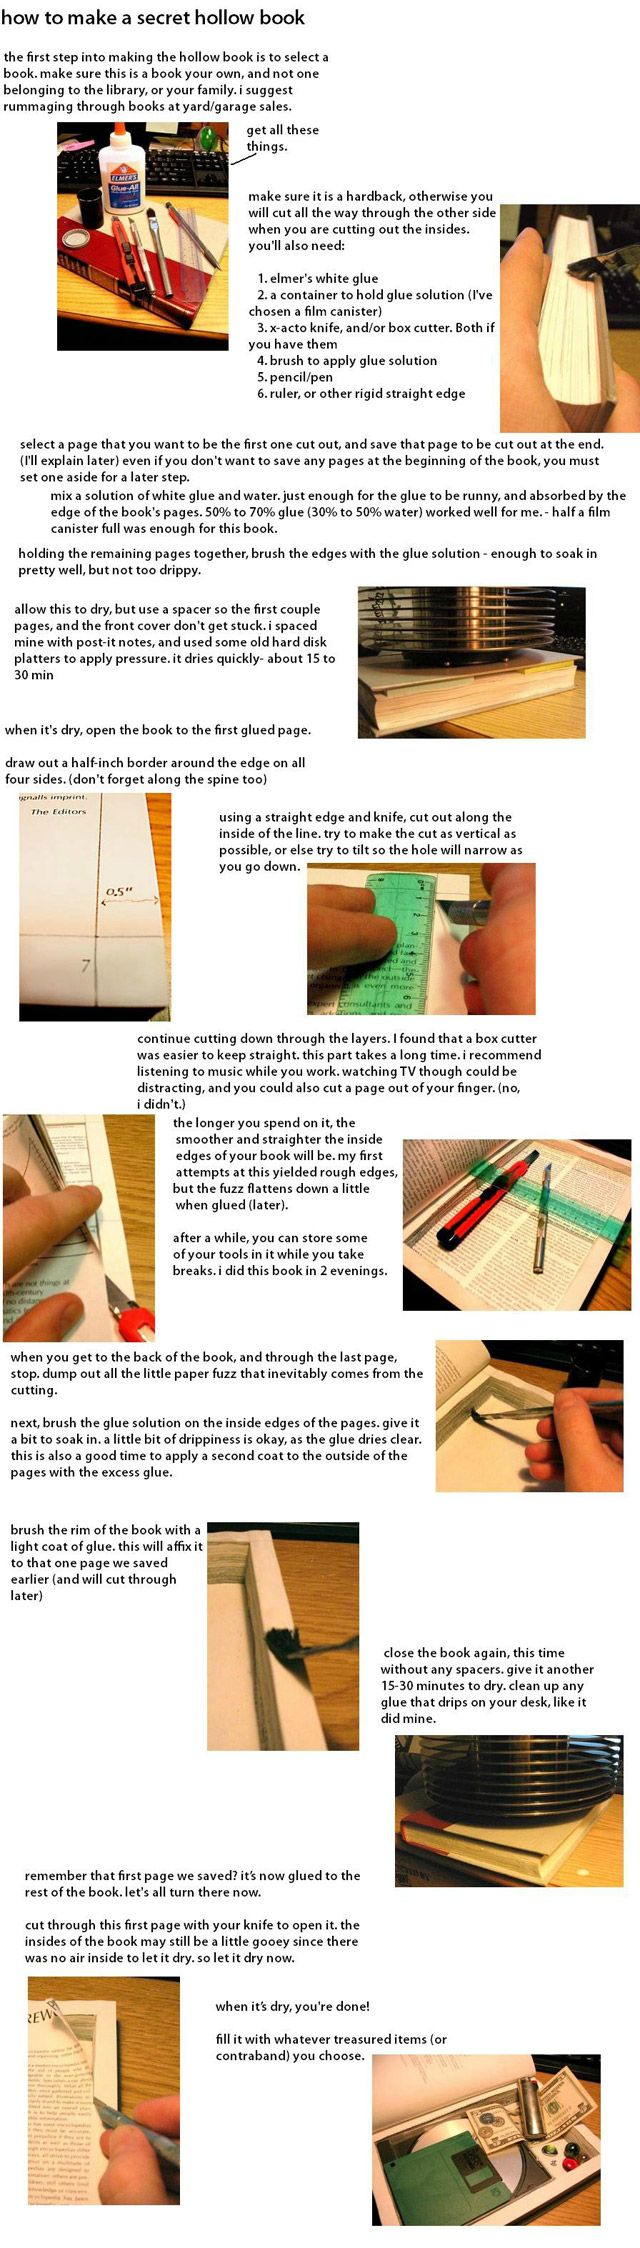 DIY how to make a secret hollow book - I'm doing this to a small bible so I can stash a flask inside! Hallelujah!